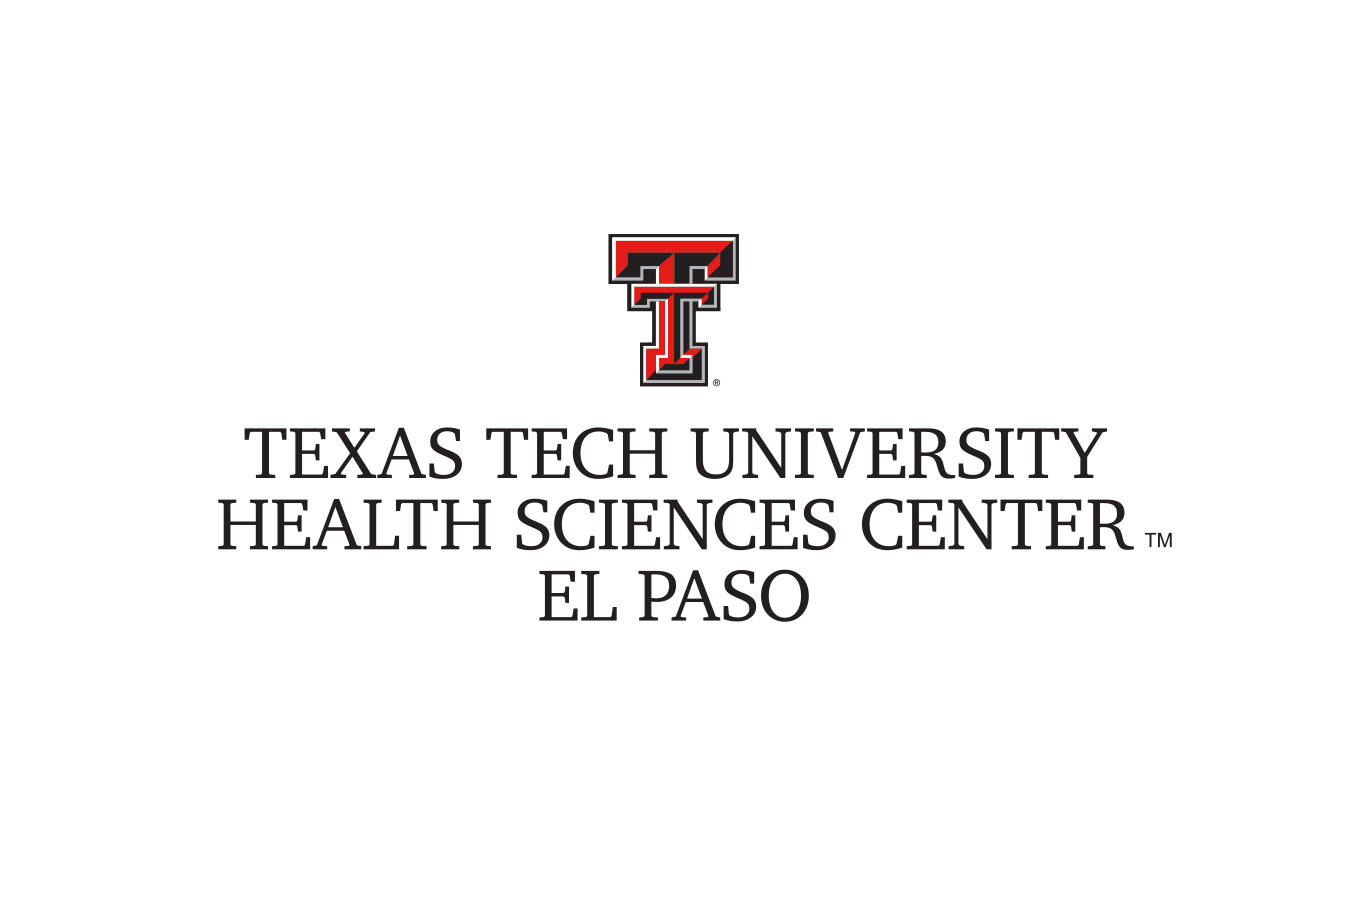 ACGME Review Committees Grant Accreditation for TTUHSC El Paso Programs